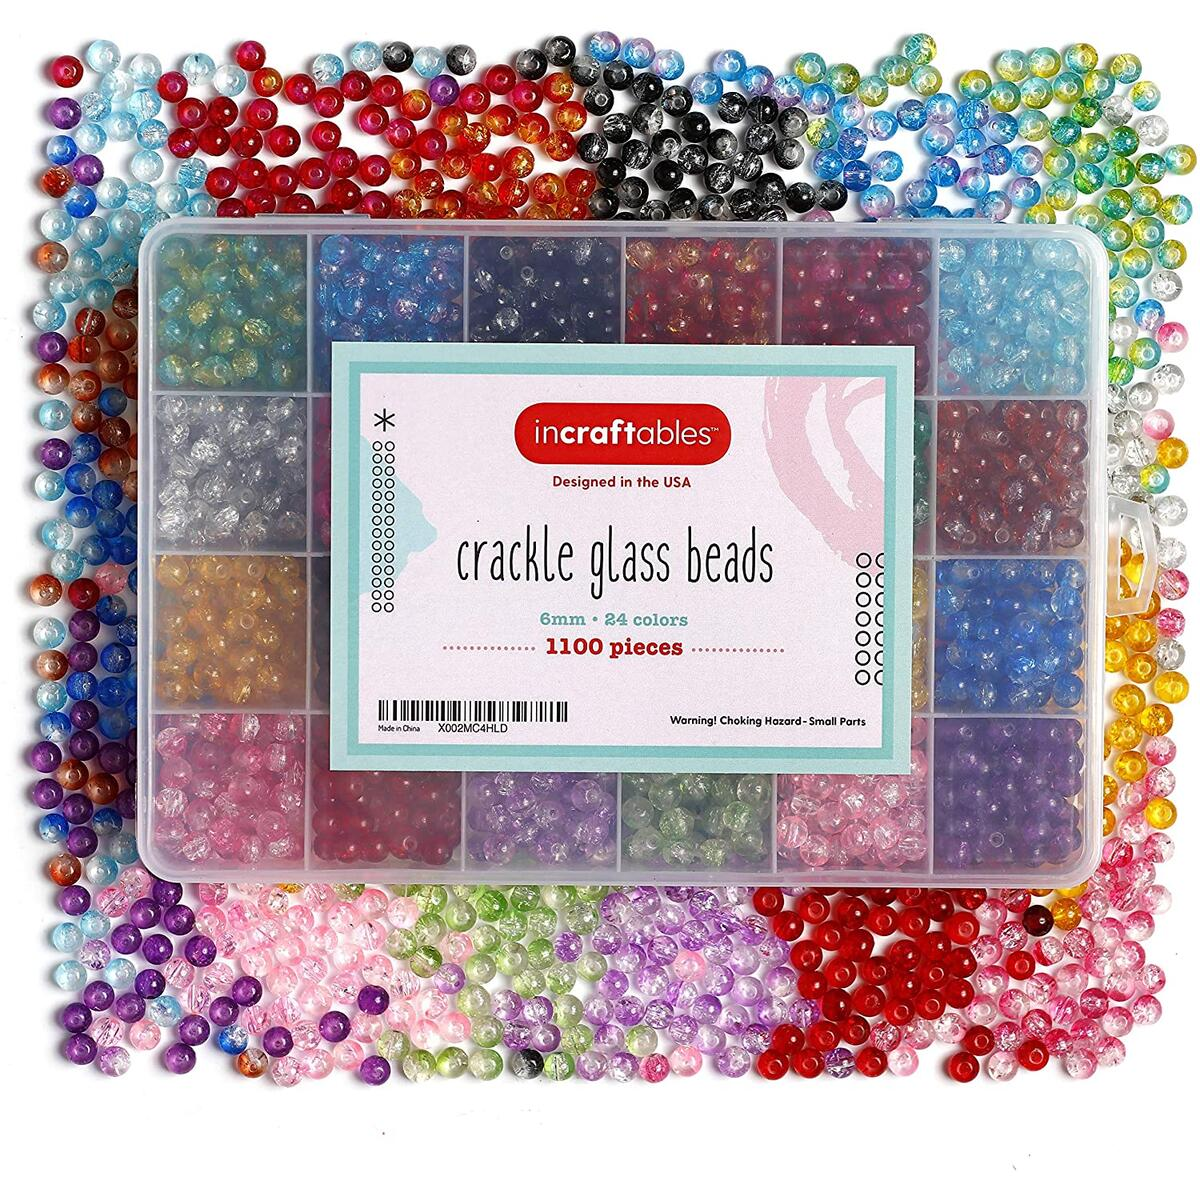 Incraftables Crackle Glass Beads 24 Colors 1100pcs 6mm Kit for Jewelry Making, Hair Accessories, Bracelets, & Crafts.